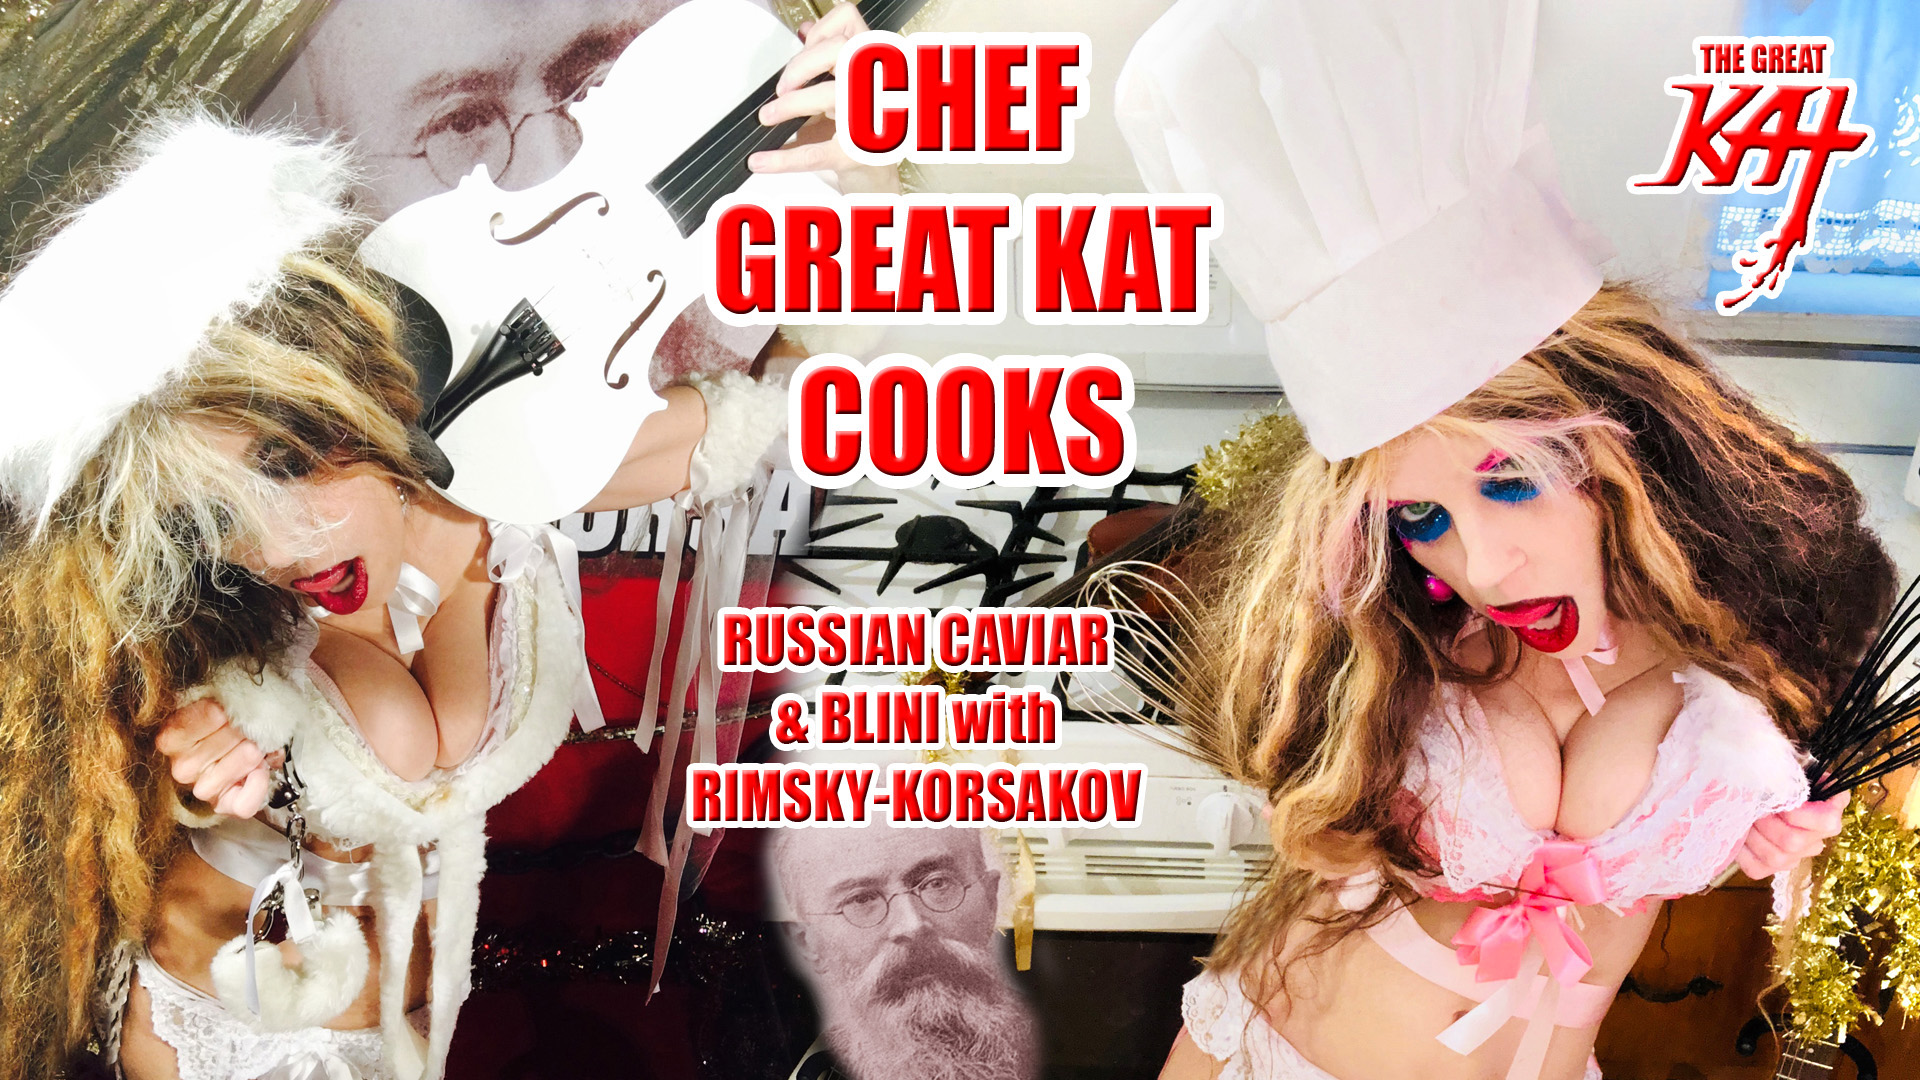 "WORLD PREMIERE of ""CHEF GREAT KAT COOKS RUSSIAN CAVIAR AND BLINI WITH RIMSKY-KORSAKOV"" VIDEO on AMAZON at https://www.amazon.com/dp/B0791NZF6J The Great Kat is the hot Russian KatBot ""android"" tempting you in Russian to taste Chef Great Kat's Russian Caviar & Blini. Great Kat, Top 10 Fastest Shredders Of All Time, cooks Russian Caviar & Blini with insane guitar/violin shredding on Rimsky-Korsakov's The Flight Of The Bumble-Bee & Sous Chefs Vladimir & Sergey. Great Kat takes you to secret Russian restaurant for tasting. Hot & decadent. WATCH at https://www.amazon.com/dp/B0791NZF6J"